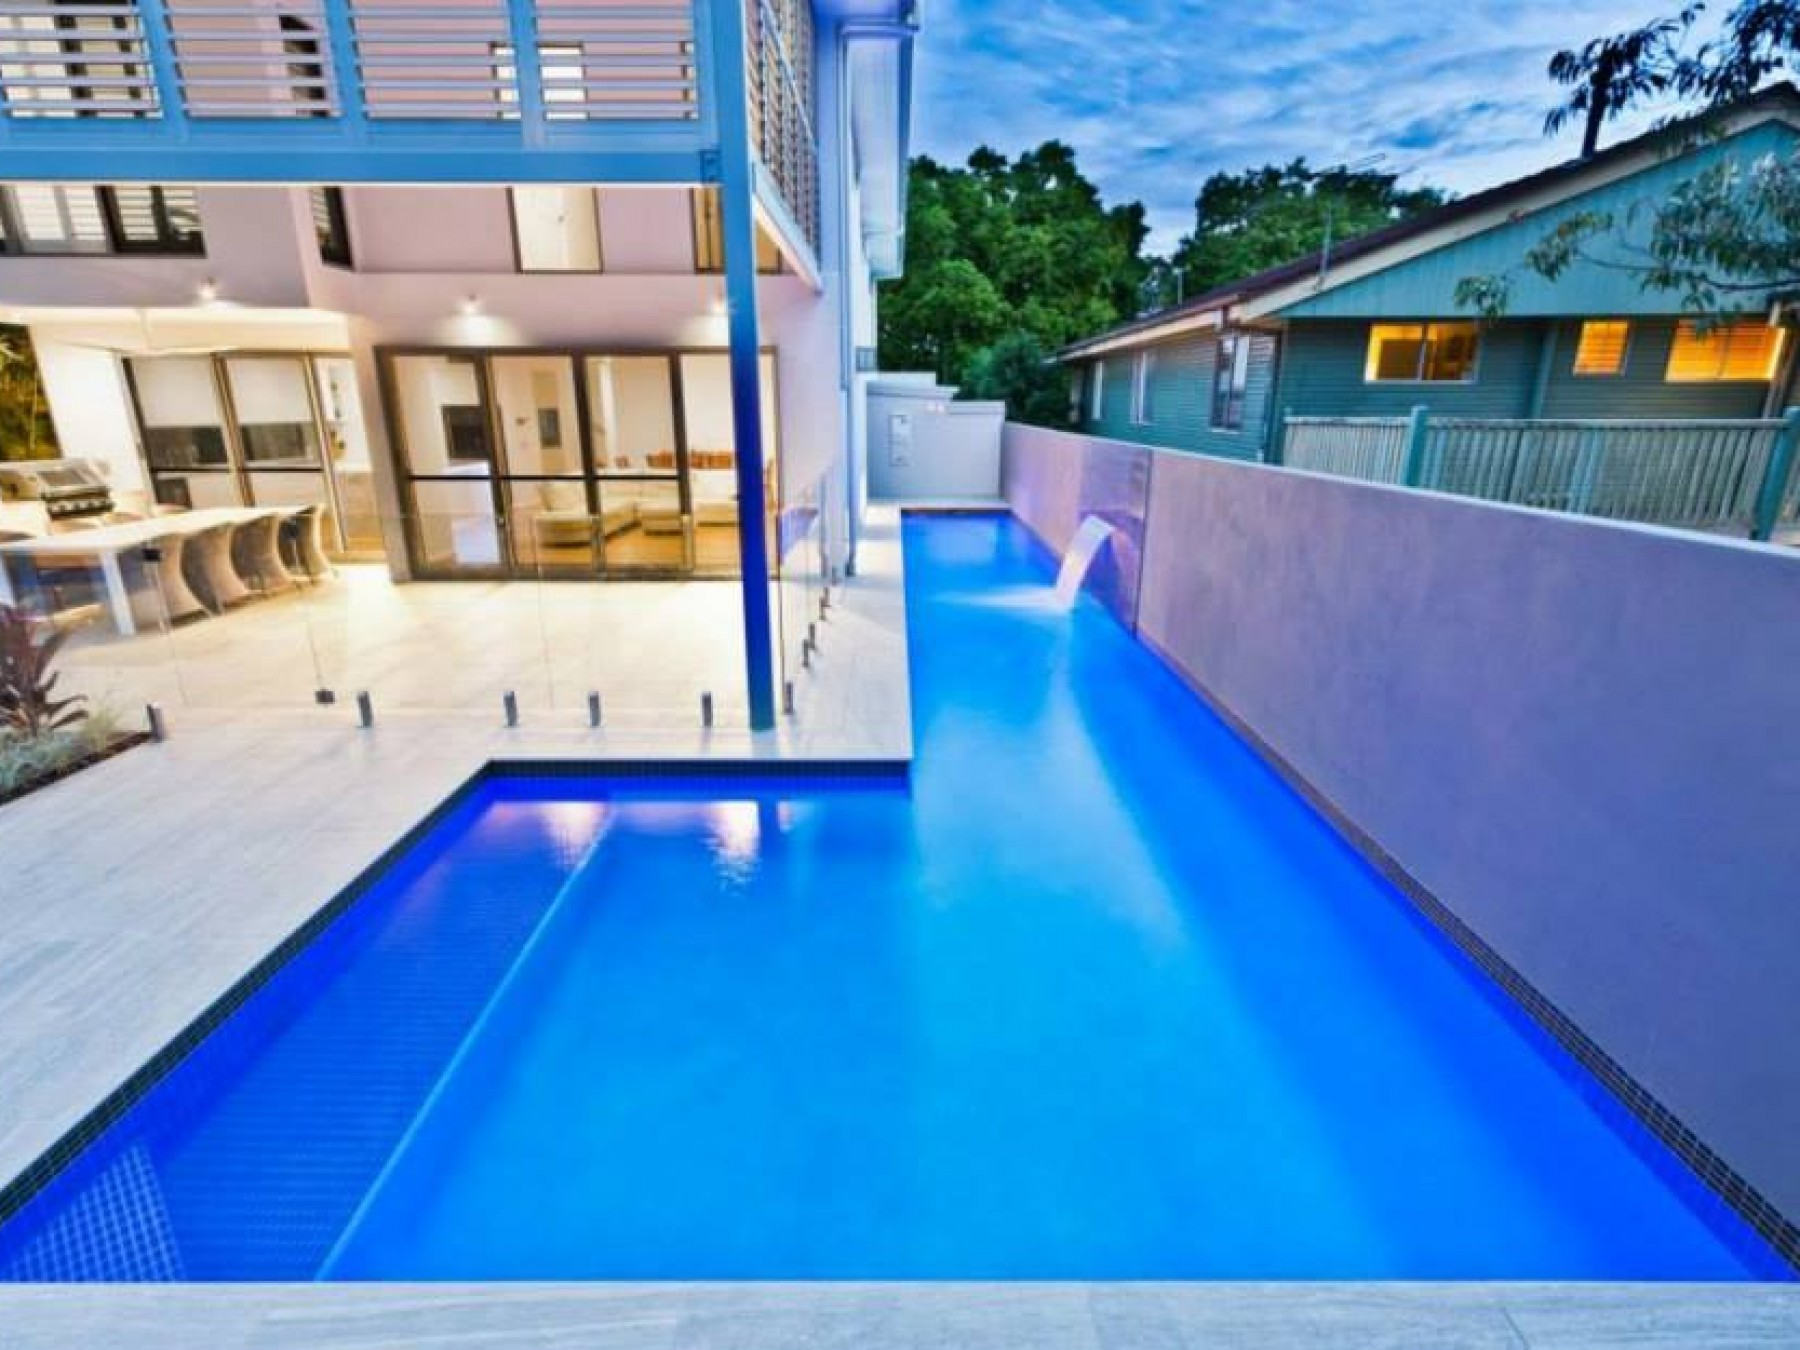 Selling or Leasing a pool in North Ipswich